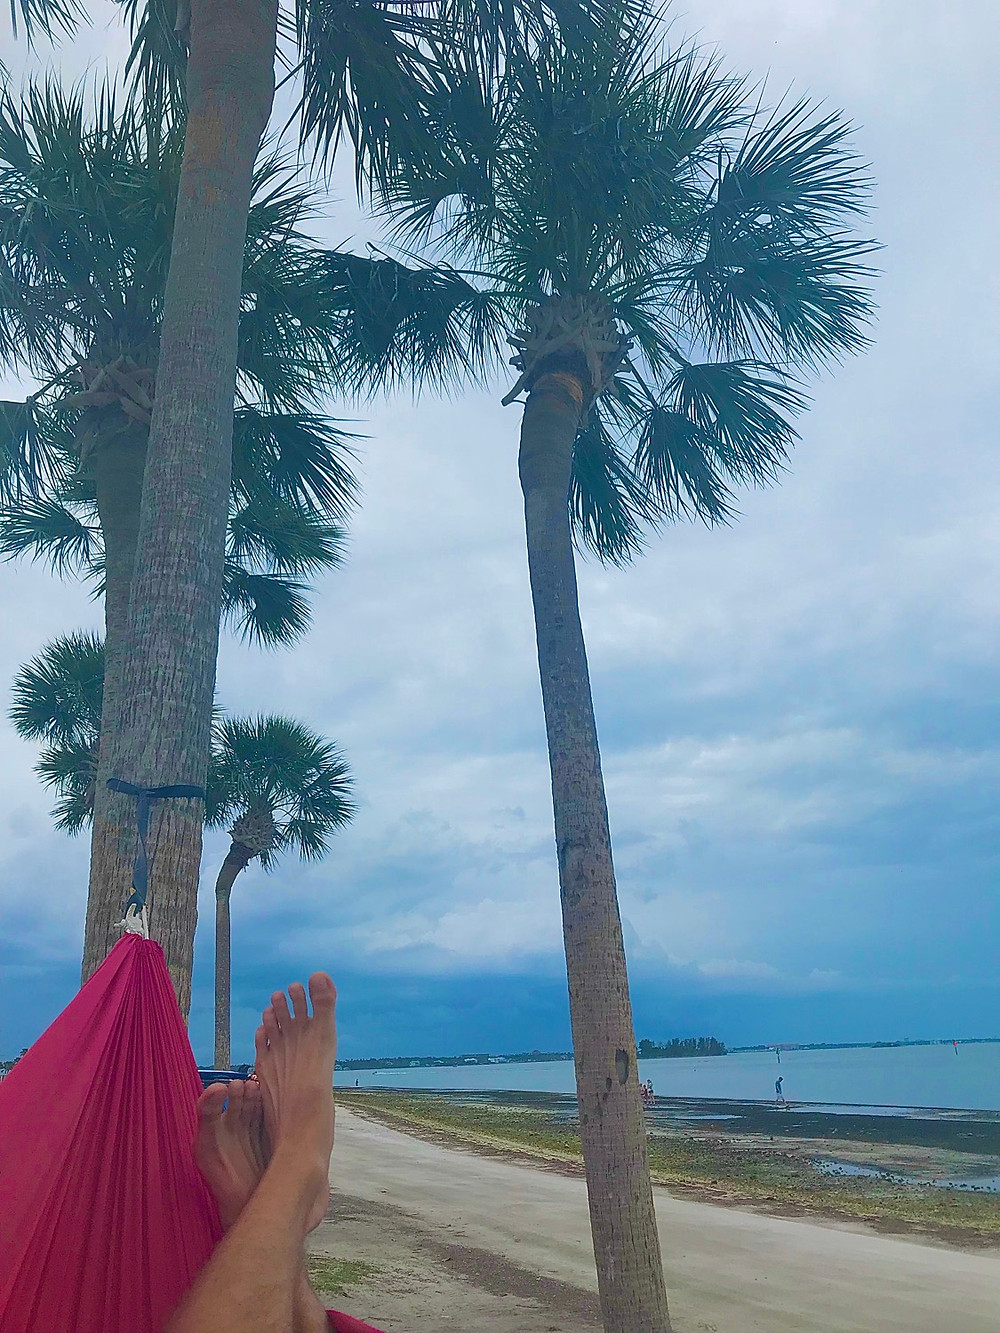 Hammocking at Honeymoon Island State Park